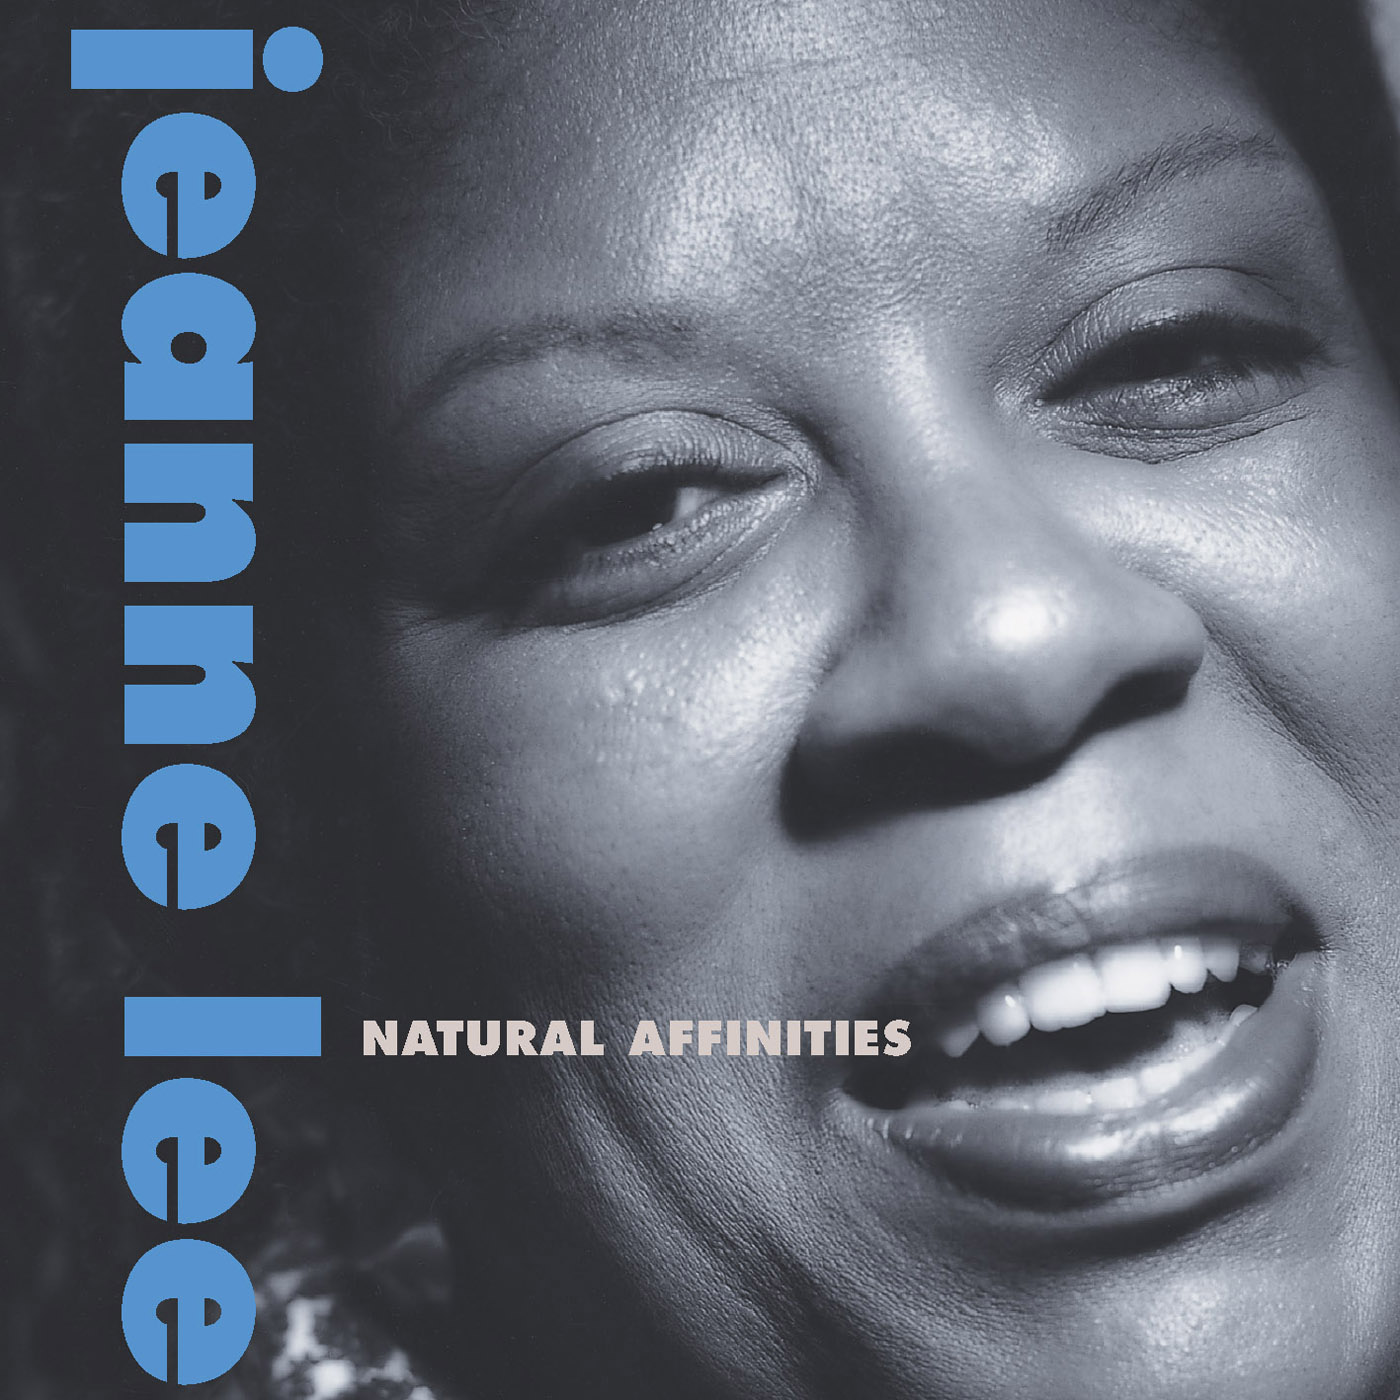 Natural Affinities by Jeanne Lee cover